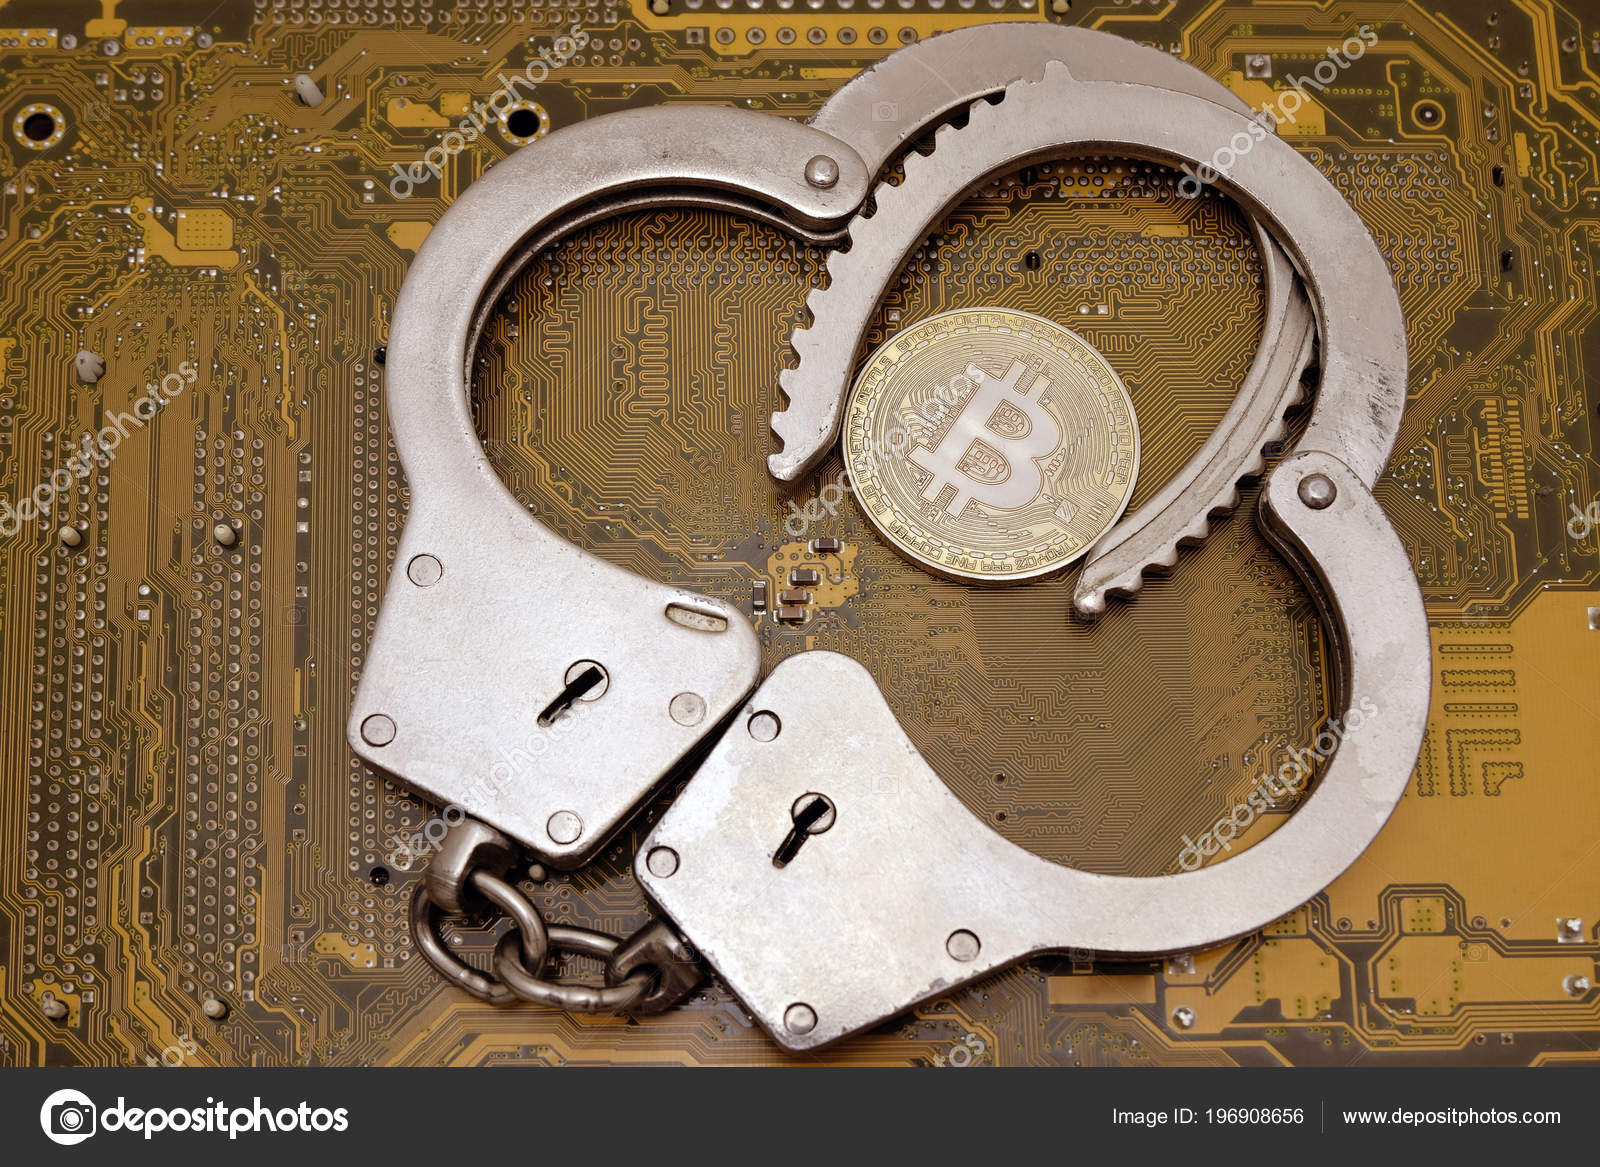 The concept of violation of the law in the crypto-currency sphereor hacker attack. Bitcoin in the open police handcuffs as in a vice against the background of a yellow computer circuit board.